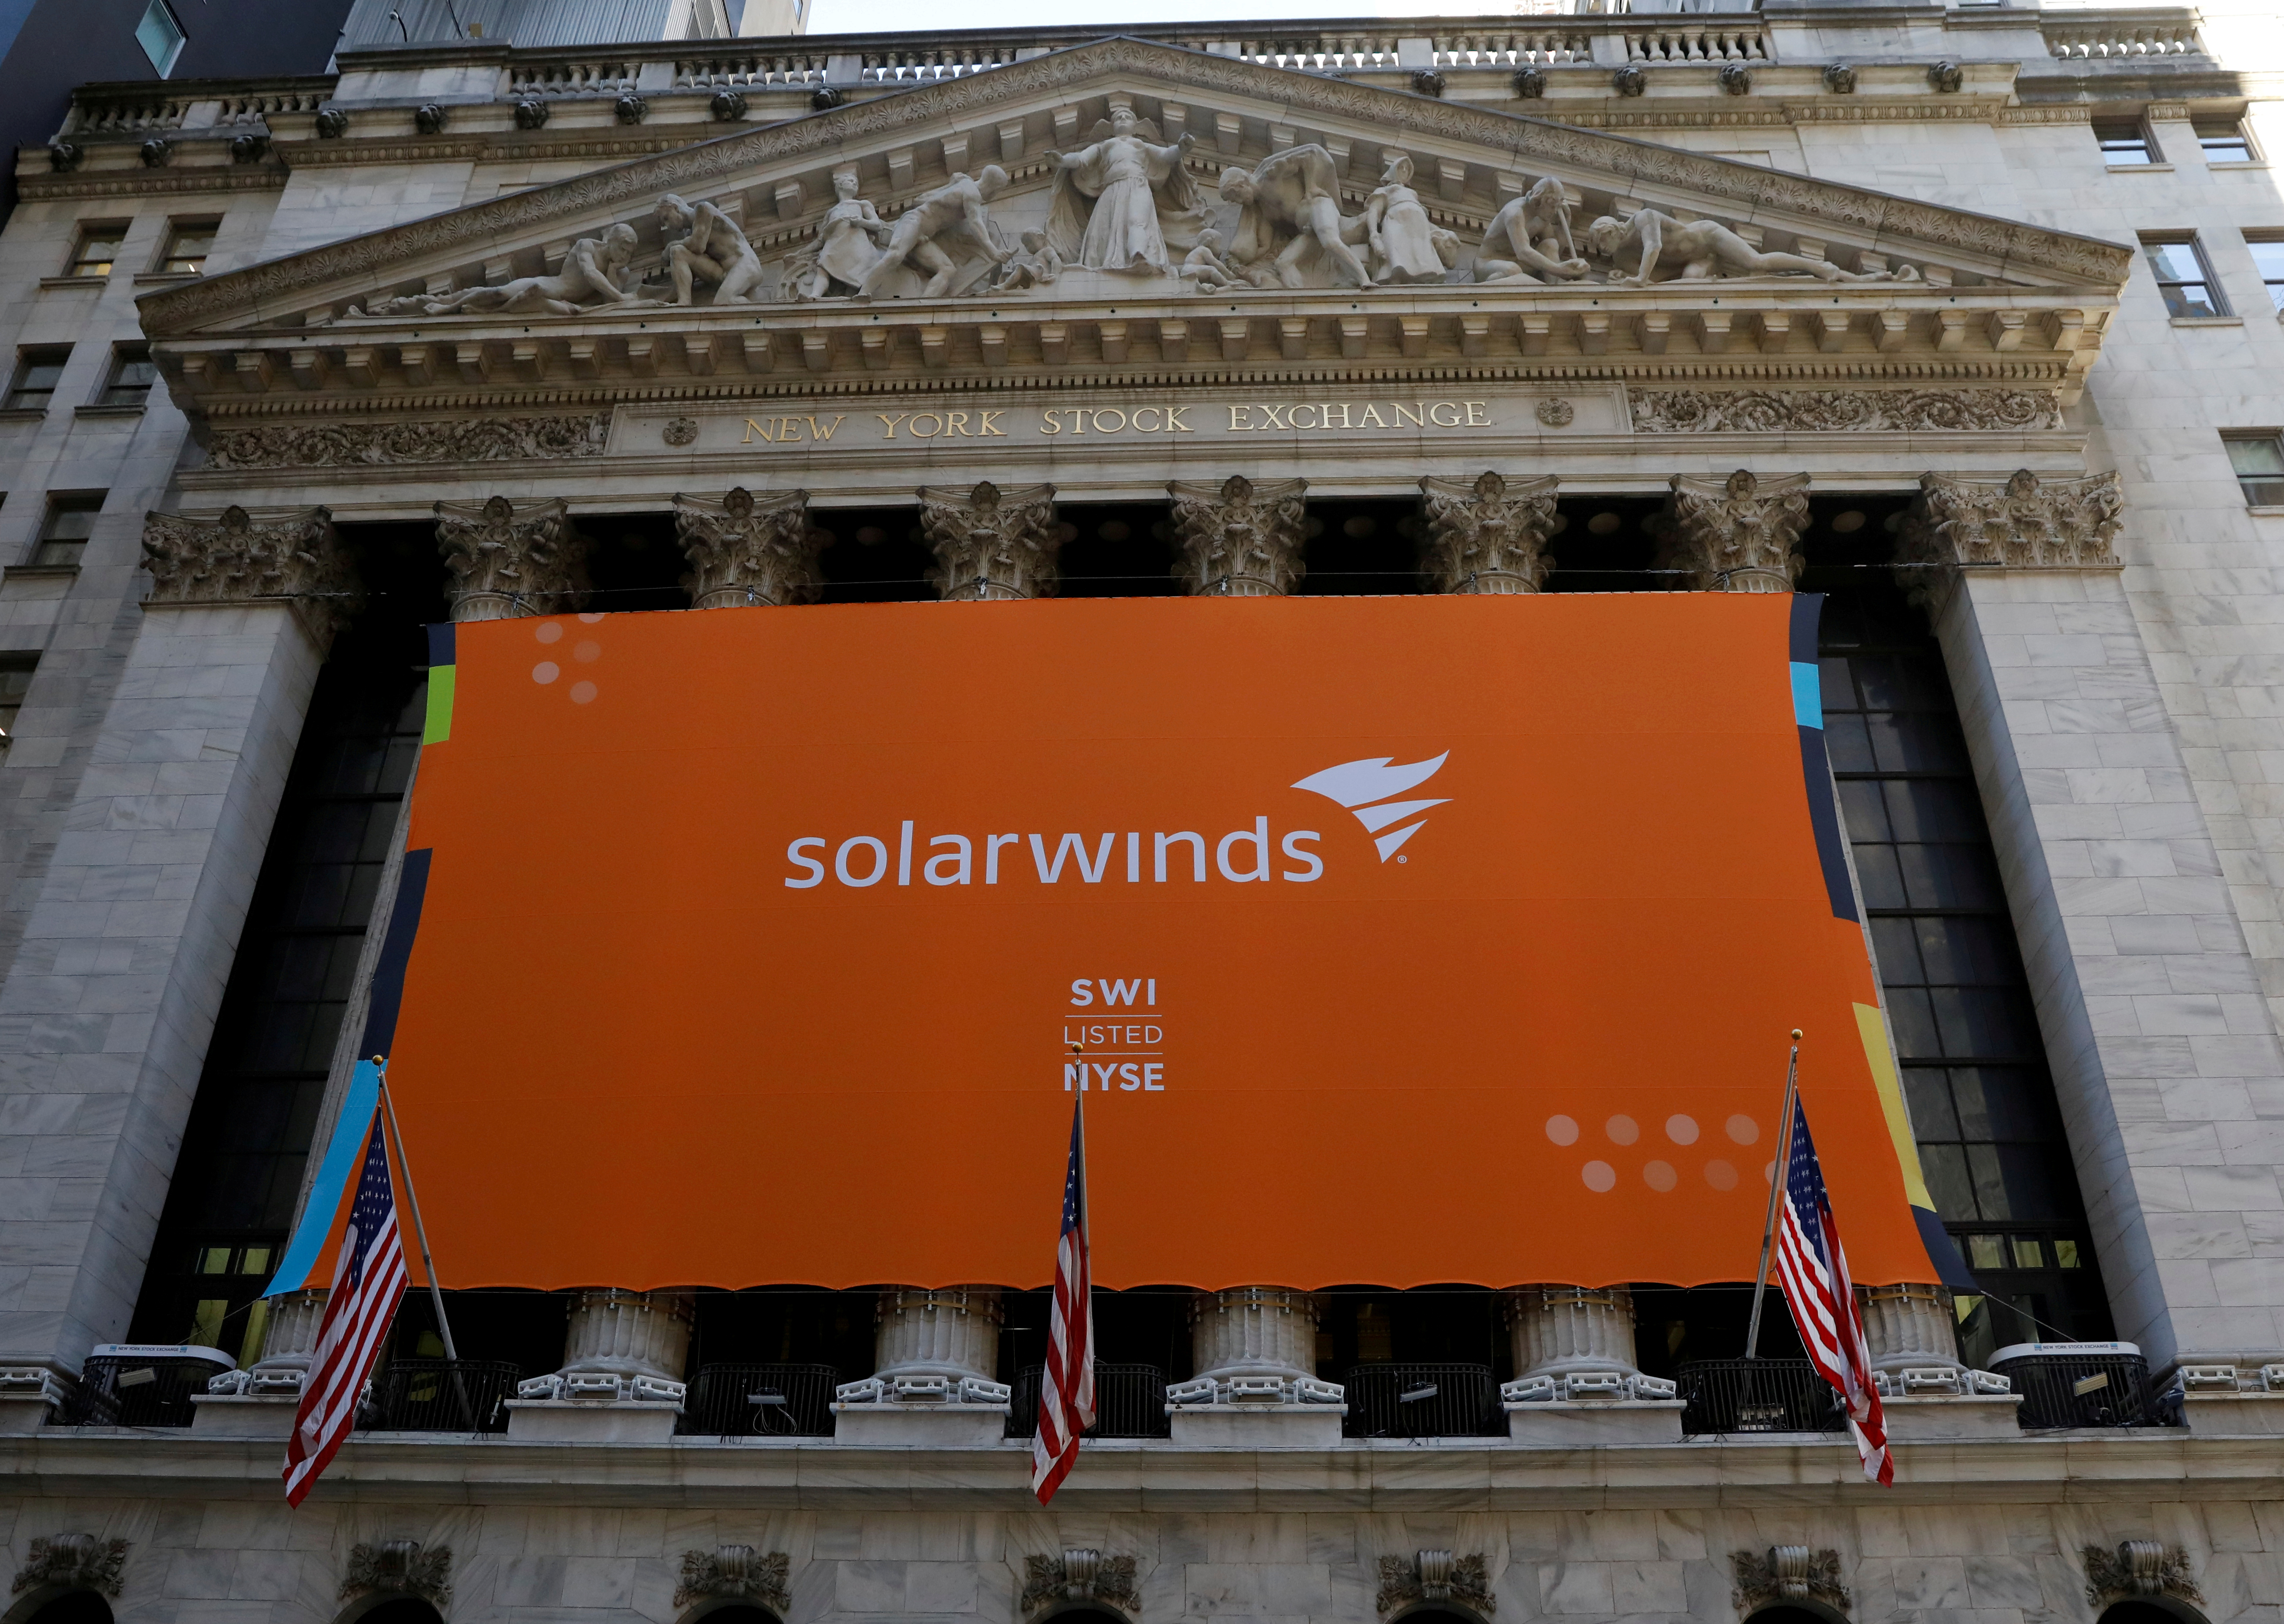 SolarWinds Corp banner hangs at the New York Stock Exchange (NYSE) on the IPO day of the company in New York, U.S., October 19, 2018. REUTERS/Brendan McDermid